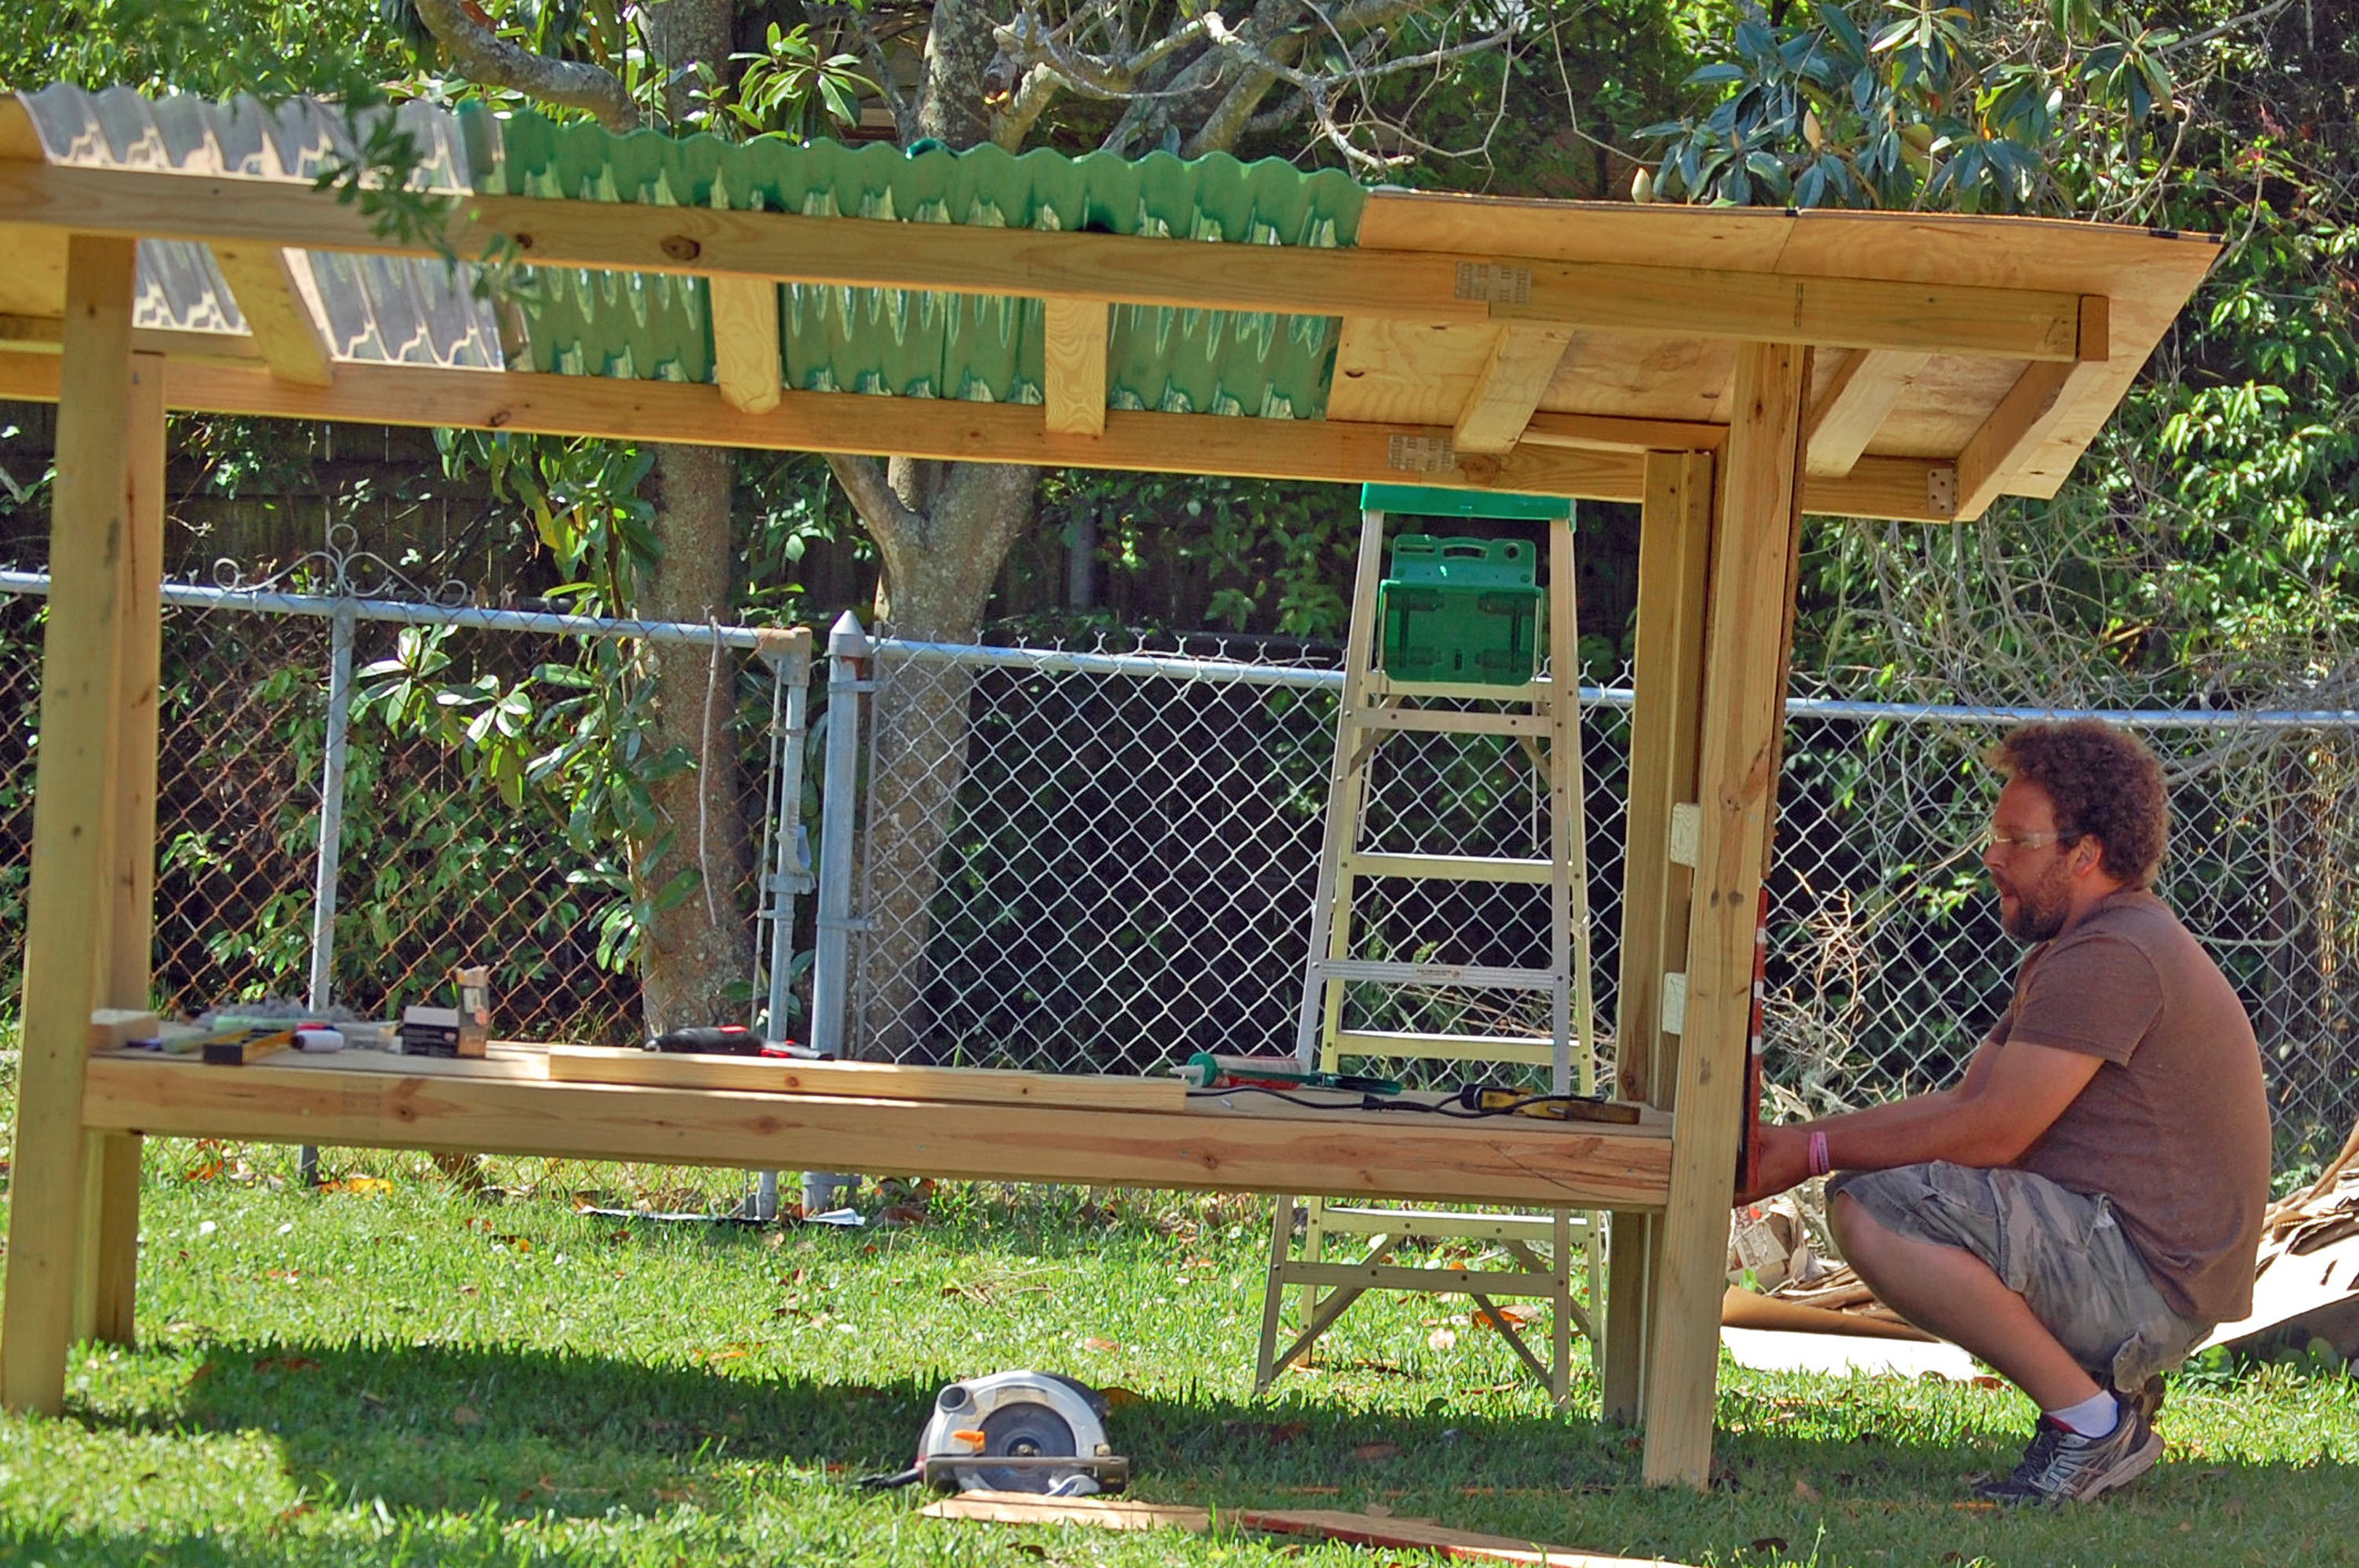 Best ideas about Easy DIY Chicken Coop Plans . Save or Pin Our DIY Chicken Coop From Recycled Materials Now.